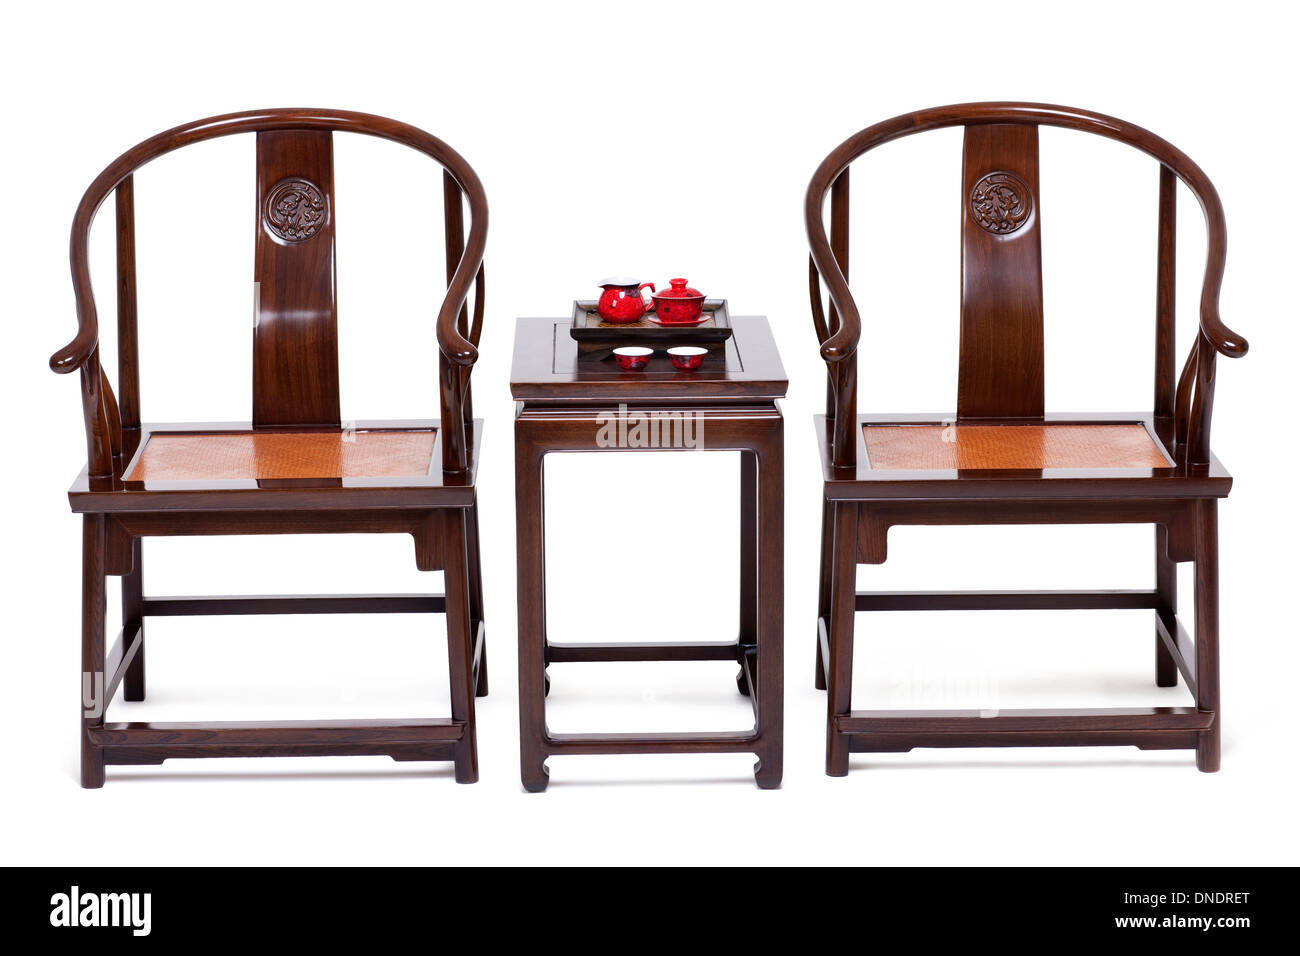 Charmant Chinese Ming Style Furniture